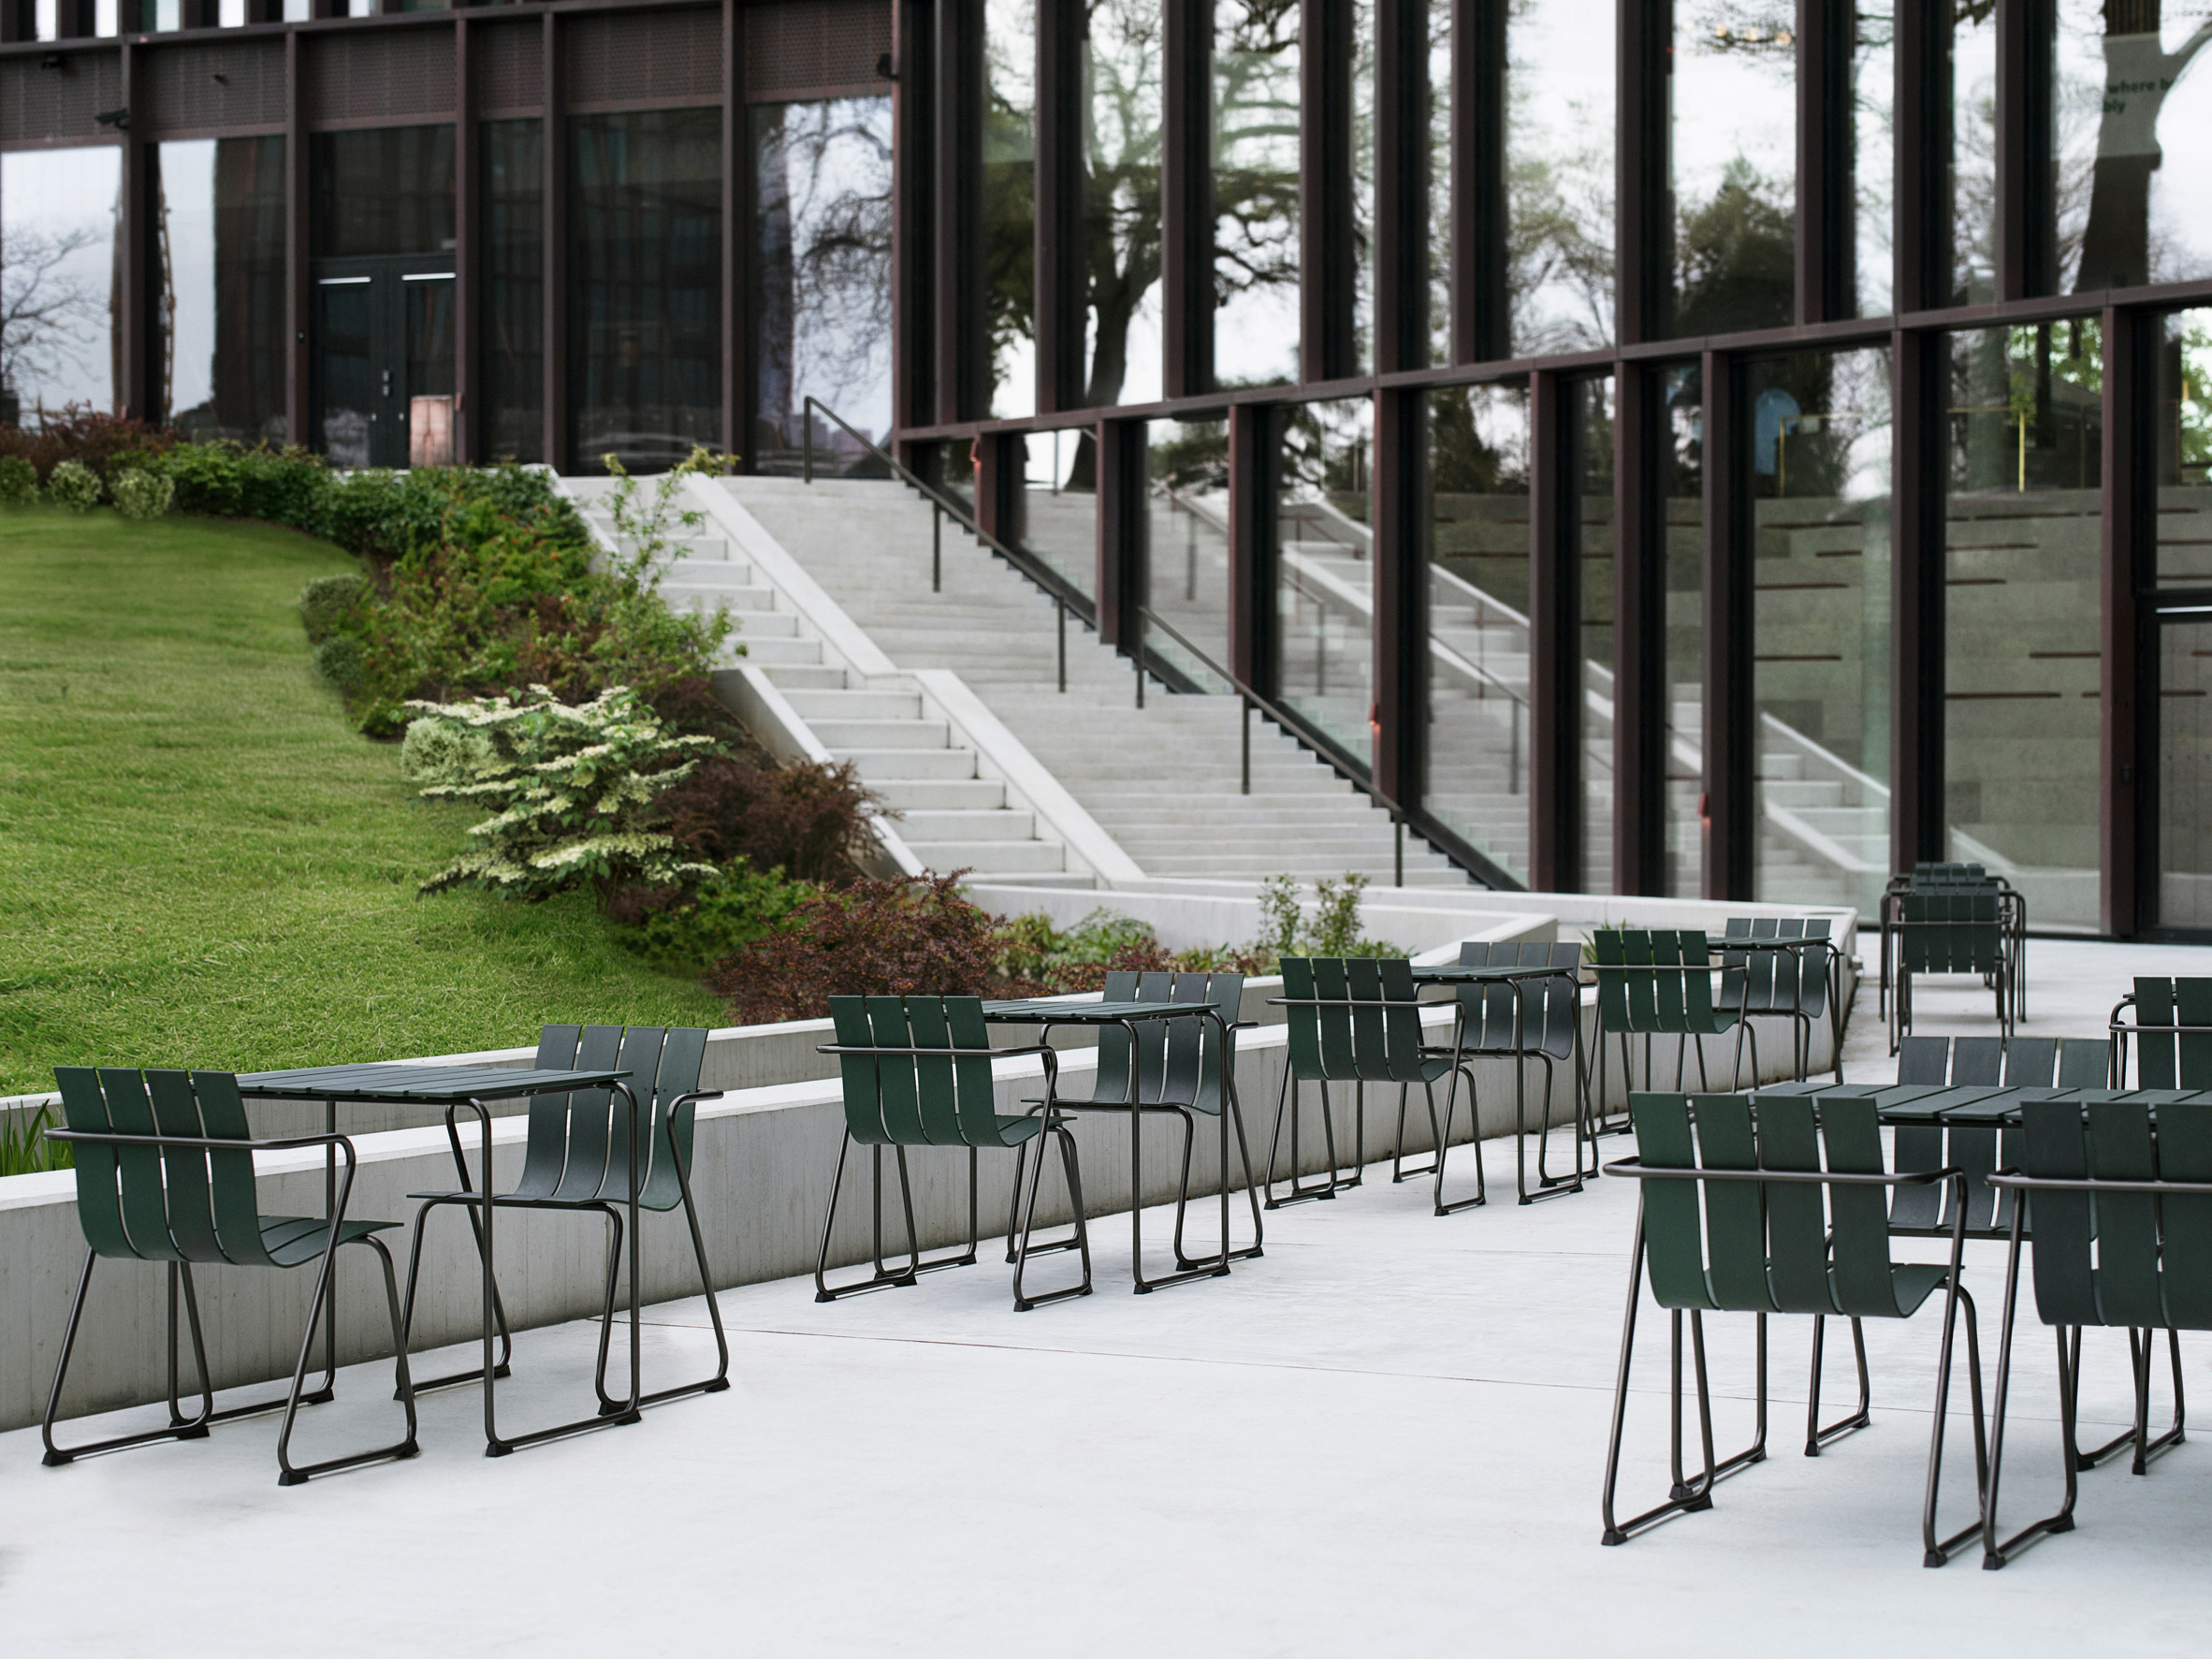 Mater outdoor seating on a patio